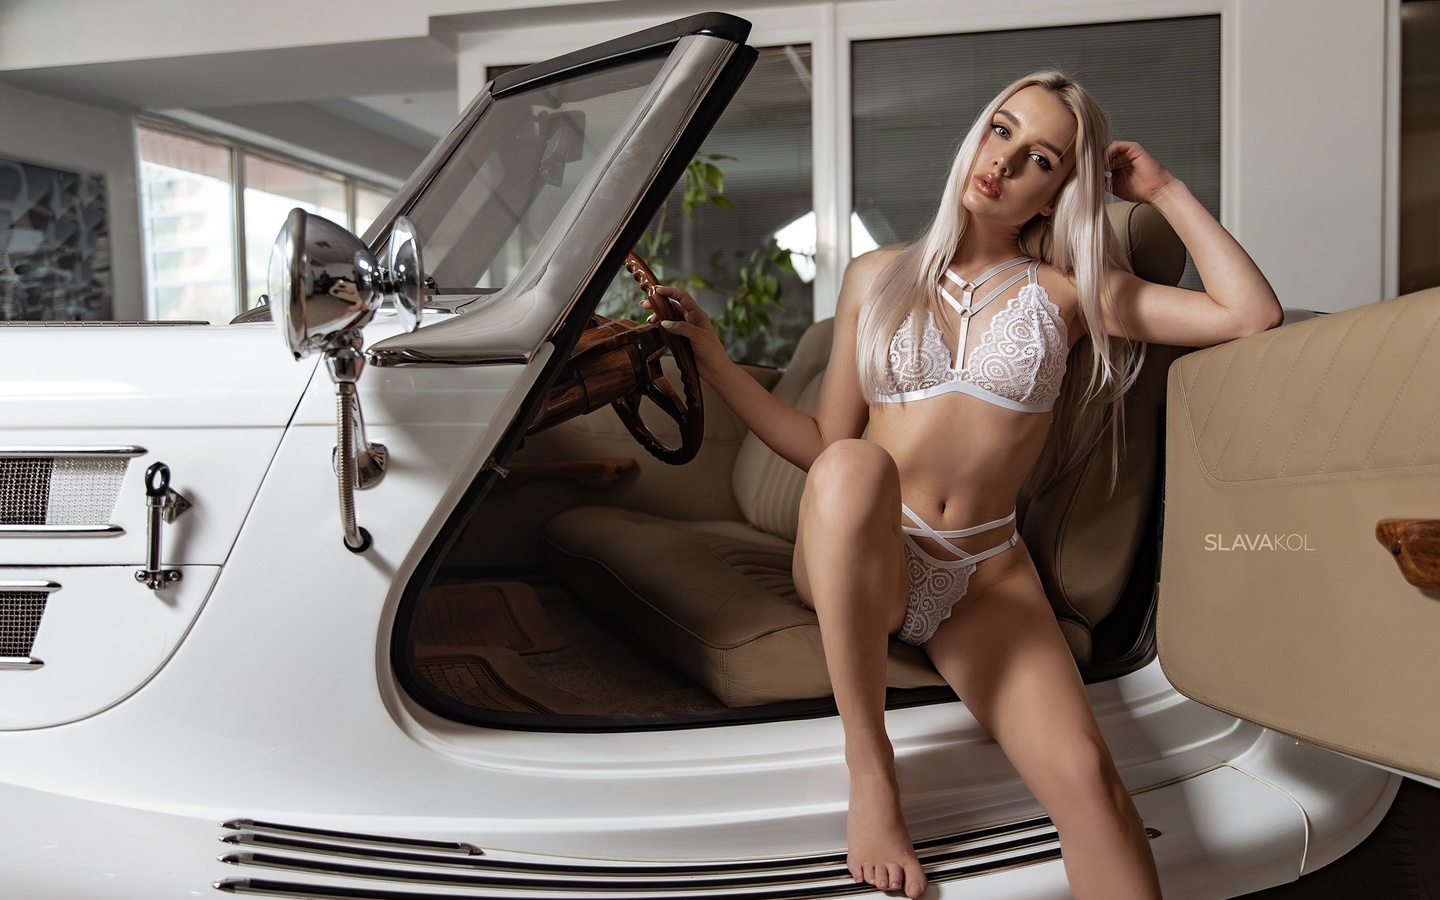 women, slava kol, blonde, eyeliner, white lingerie, belly, long hair, car, sitting, ribs, brunette, women with cars